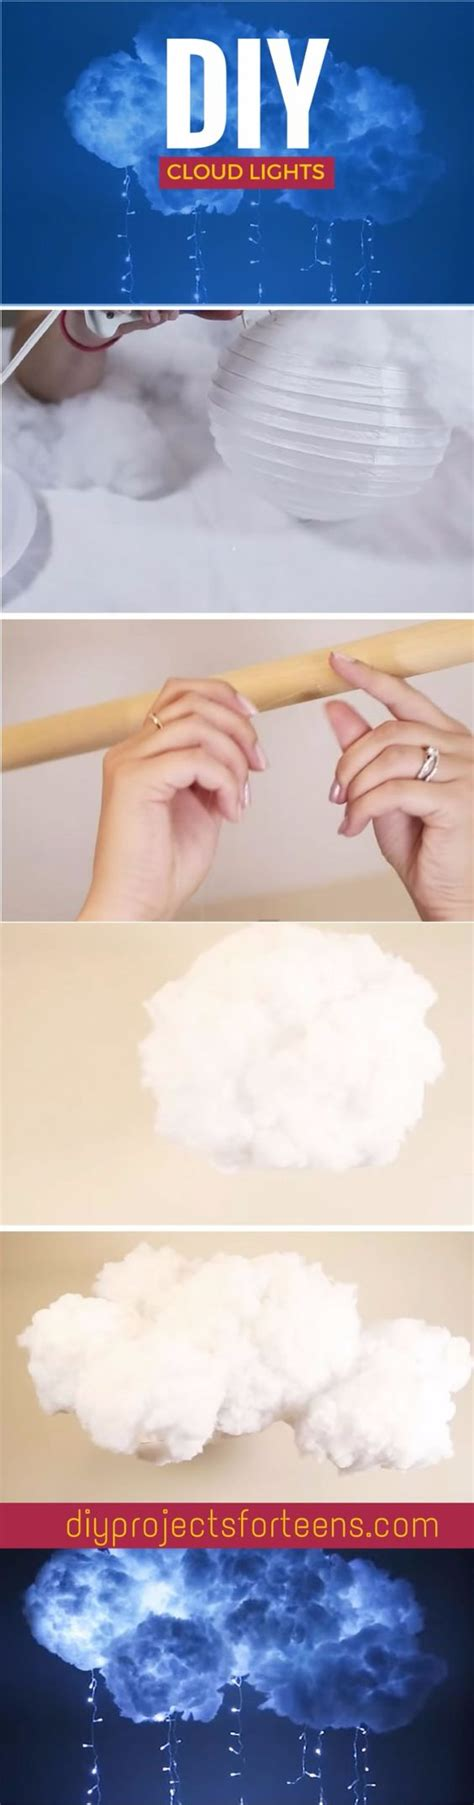 how to make bedroom cooler in summer diy cloud light teenagers and teen crafts on pinterest